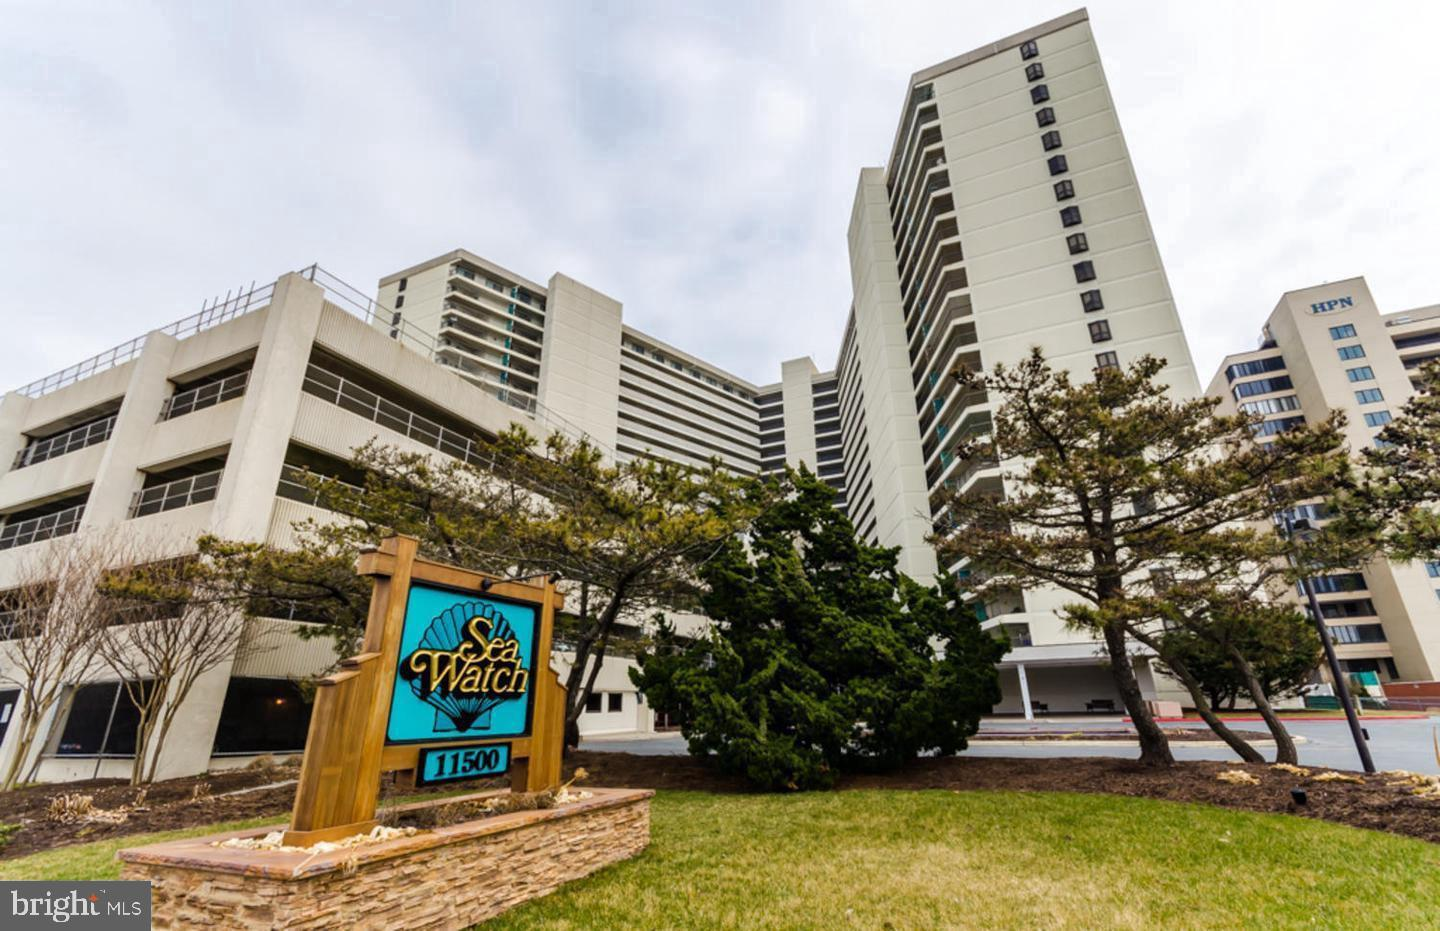 2BR/2FB + den on the 7th floor.  Updated kitchen and bathrooms, great views. This building has it al